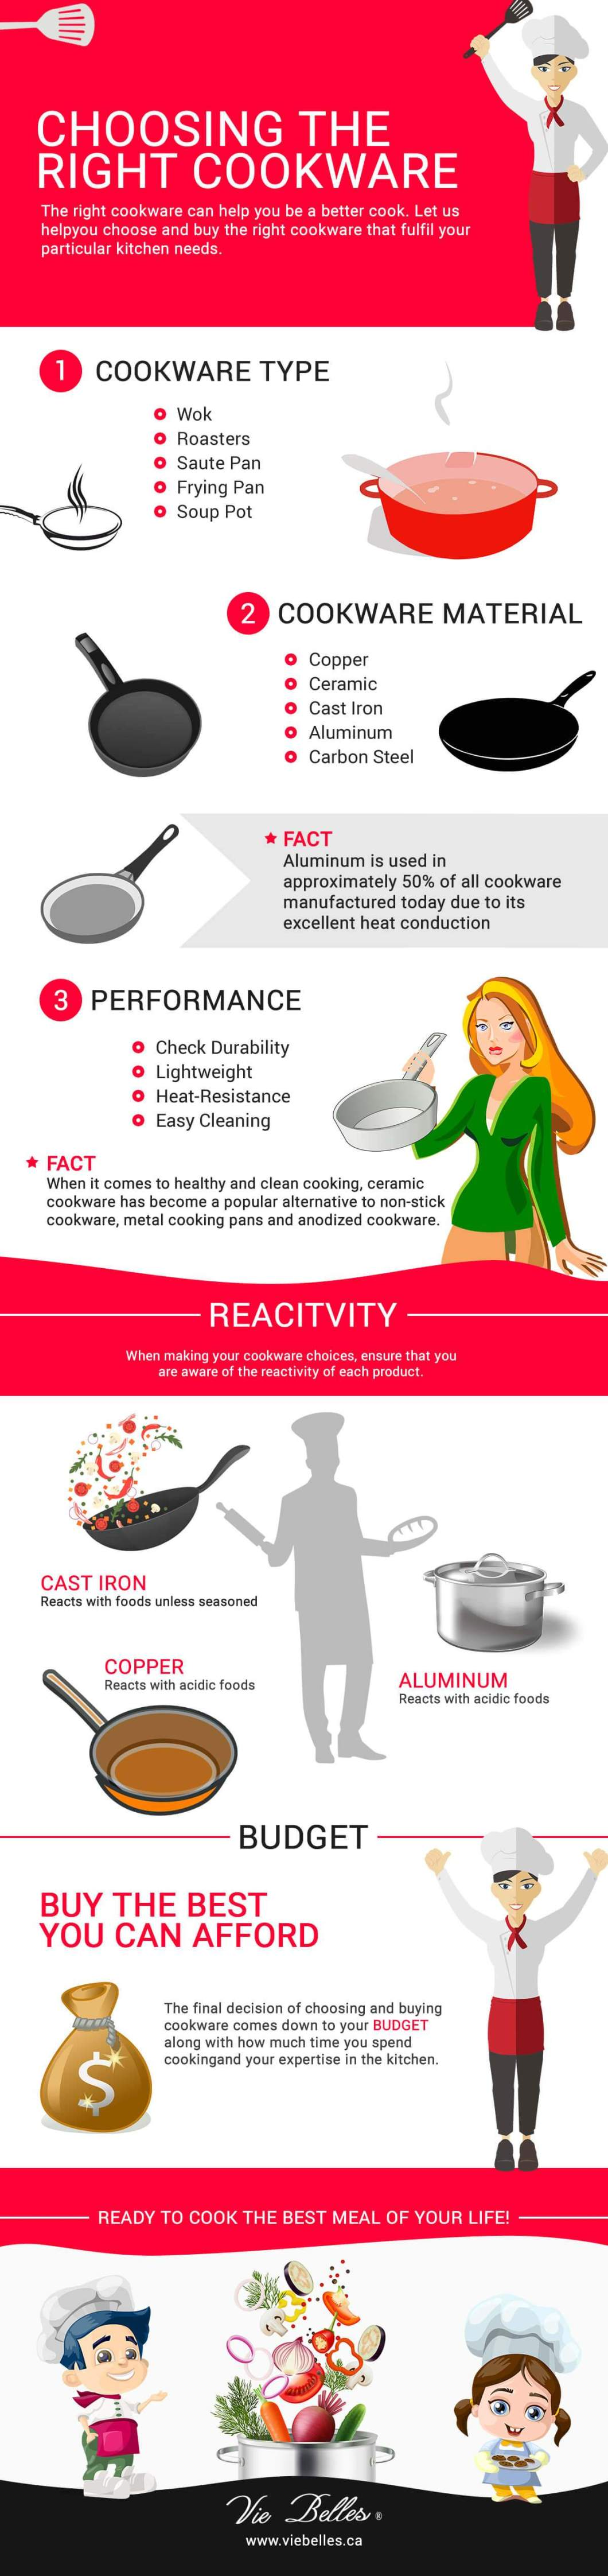 Your Ultimate Guide To Buying The Right Cookware - Infographic